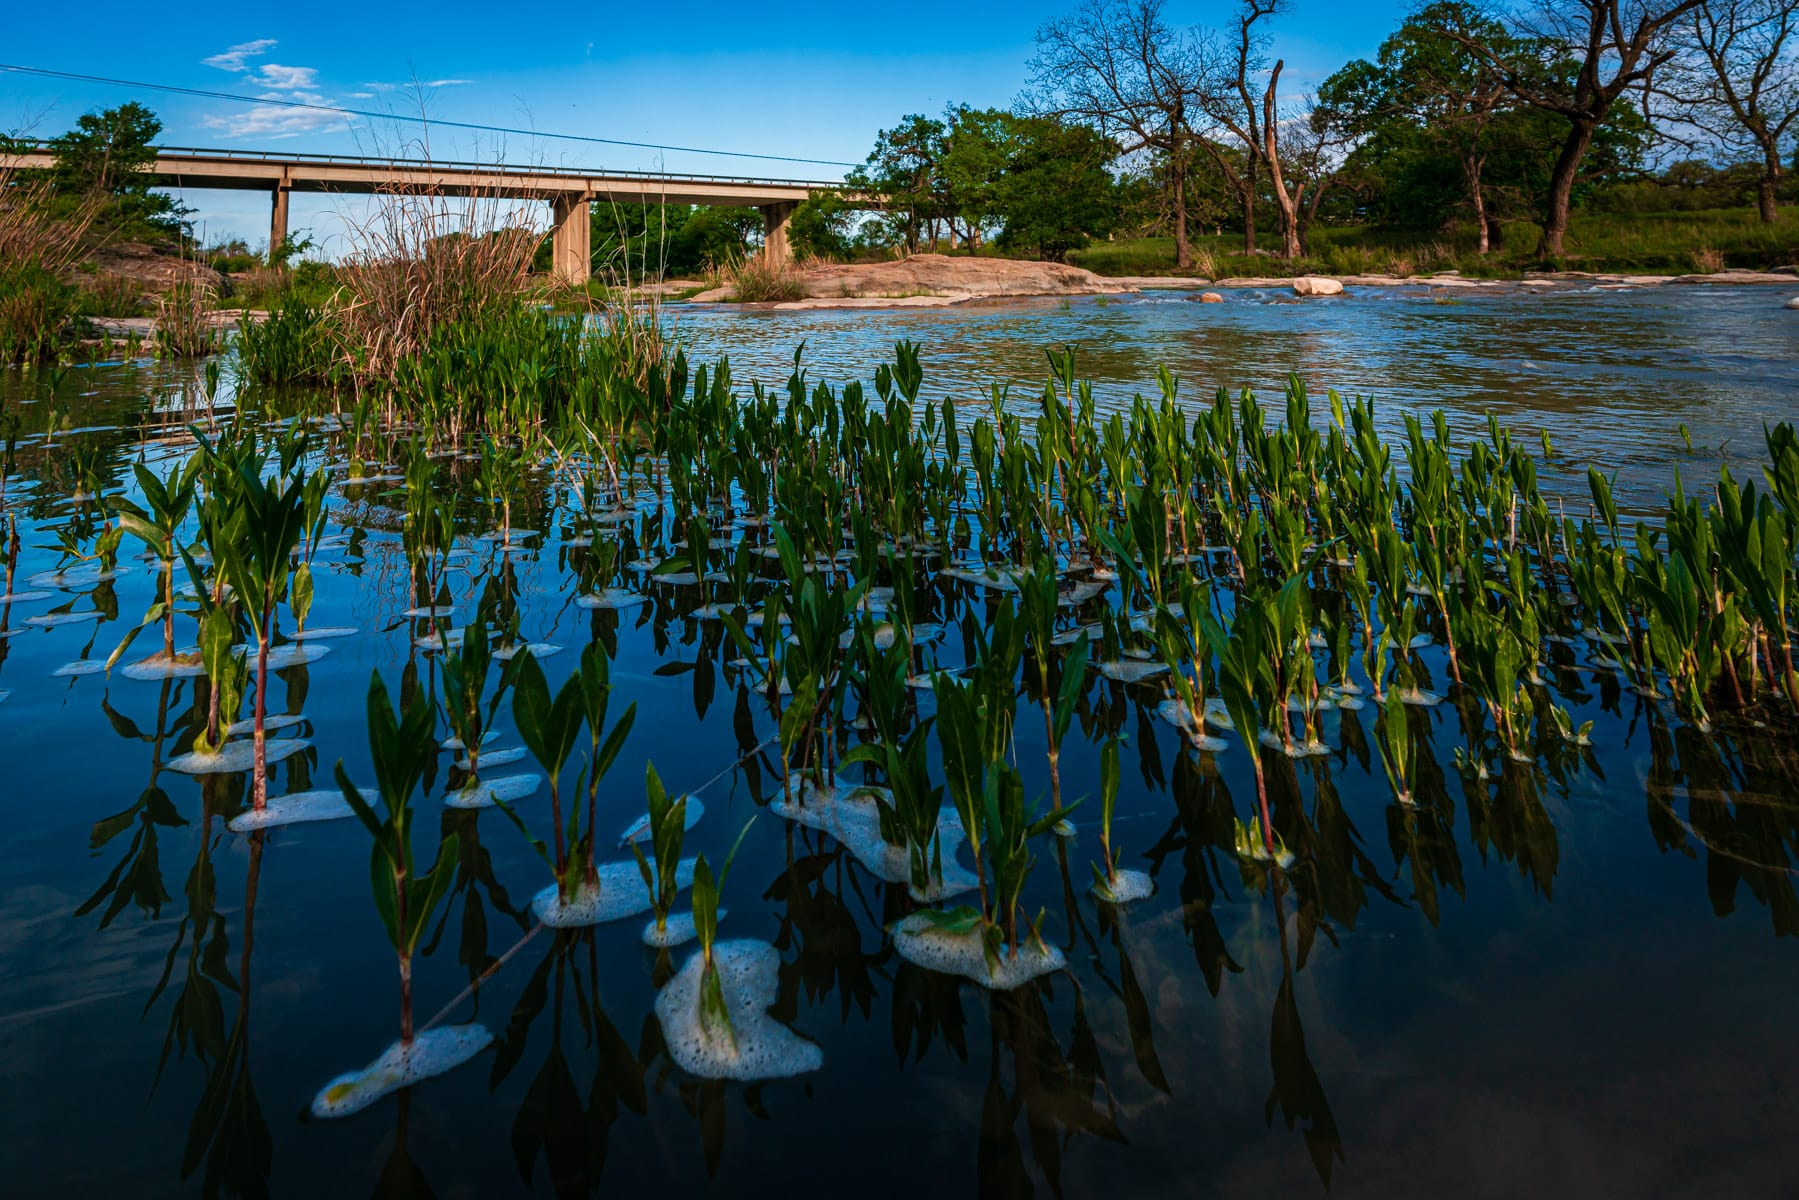 Plants sprout from the San Saba River near Brady, Texas.